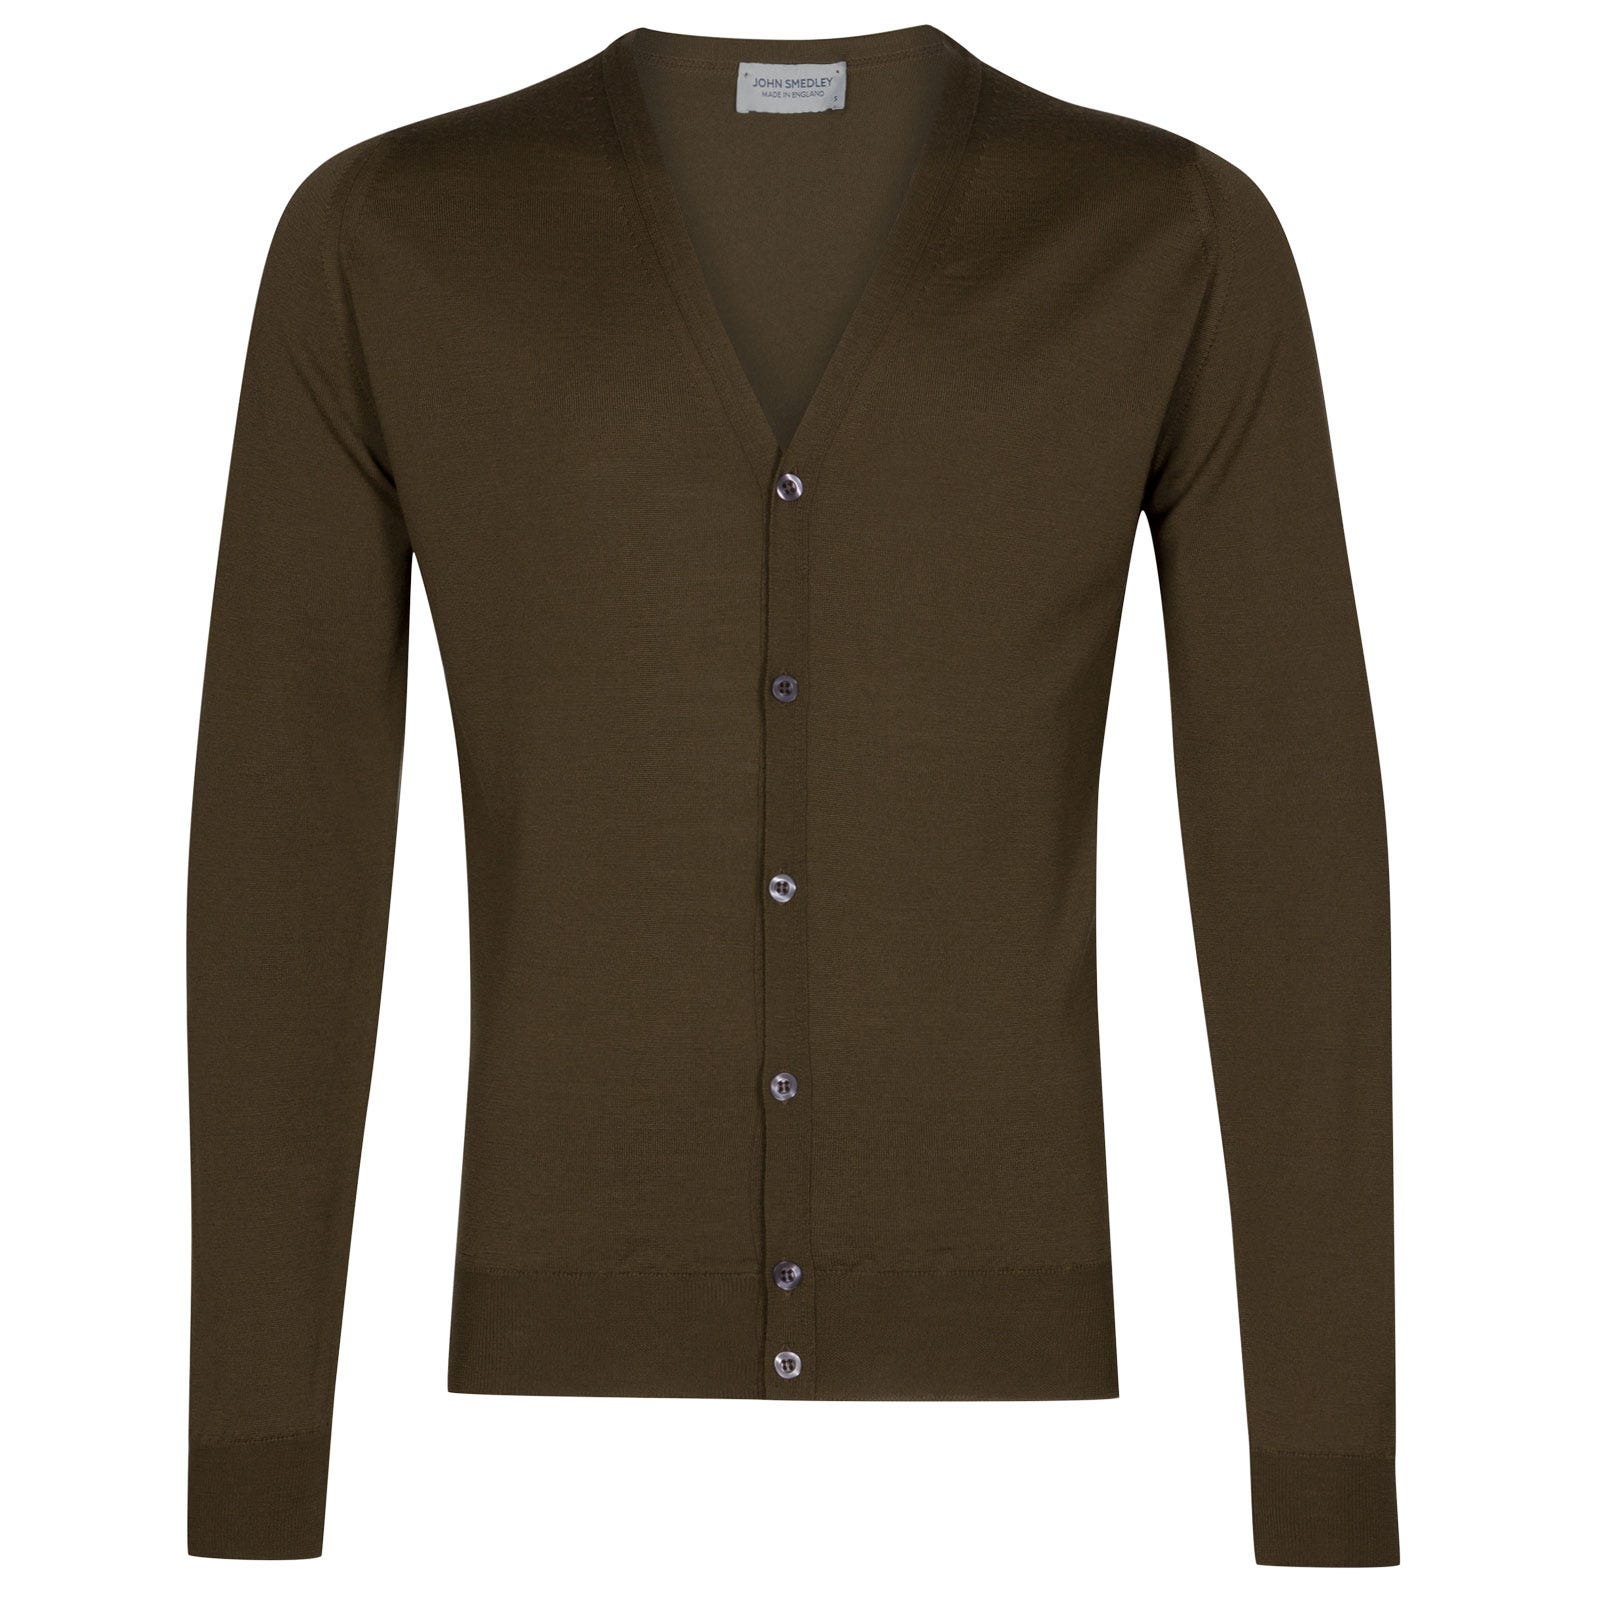 John Smedley petworth Merino Wool Cardigan in Kielder Green-M